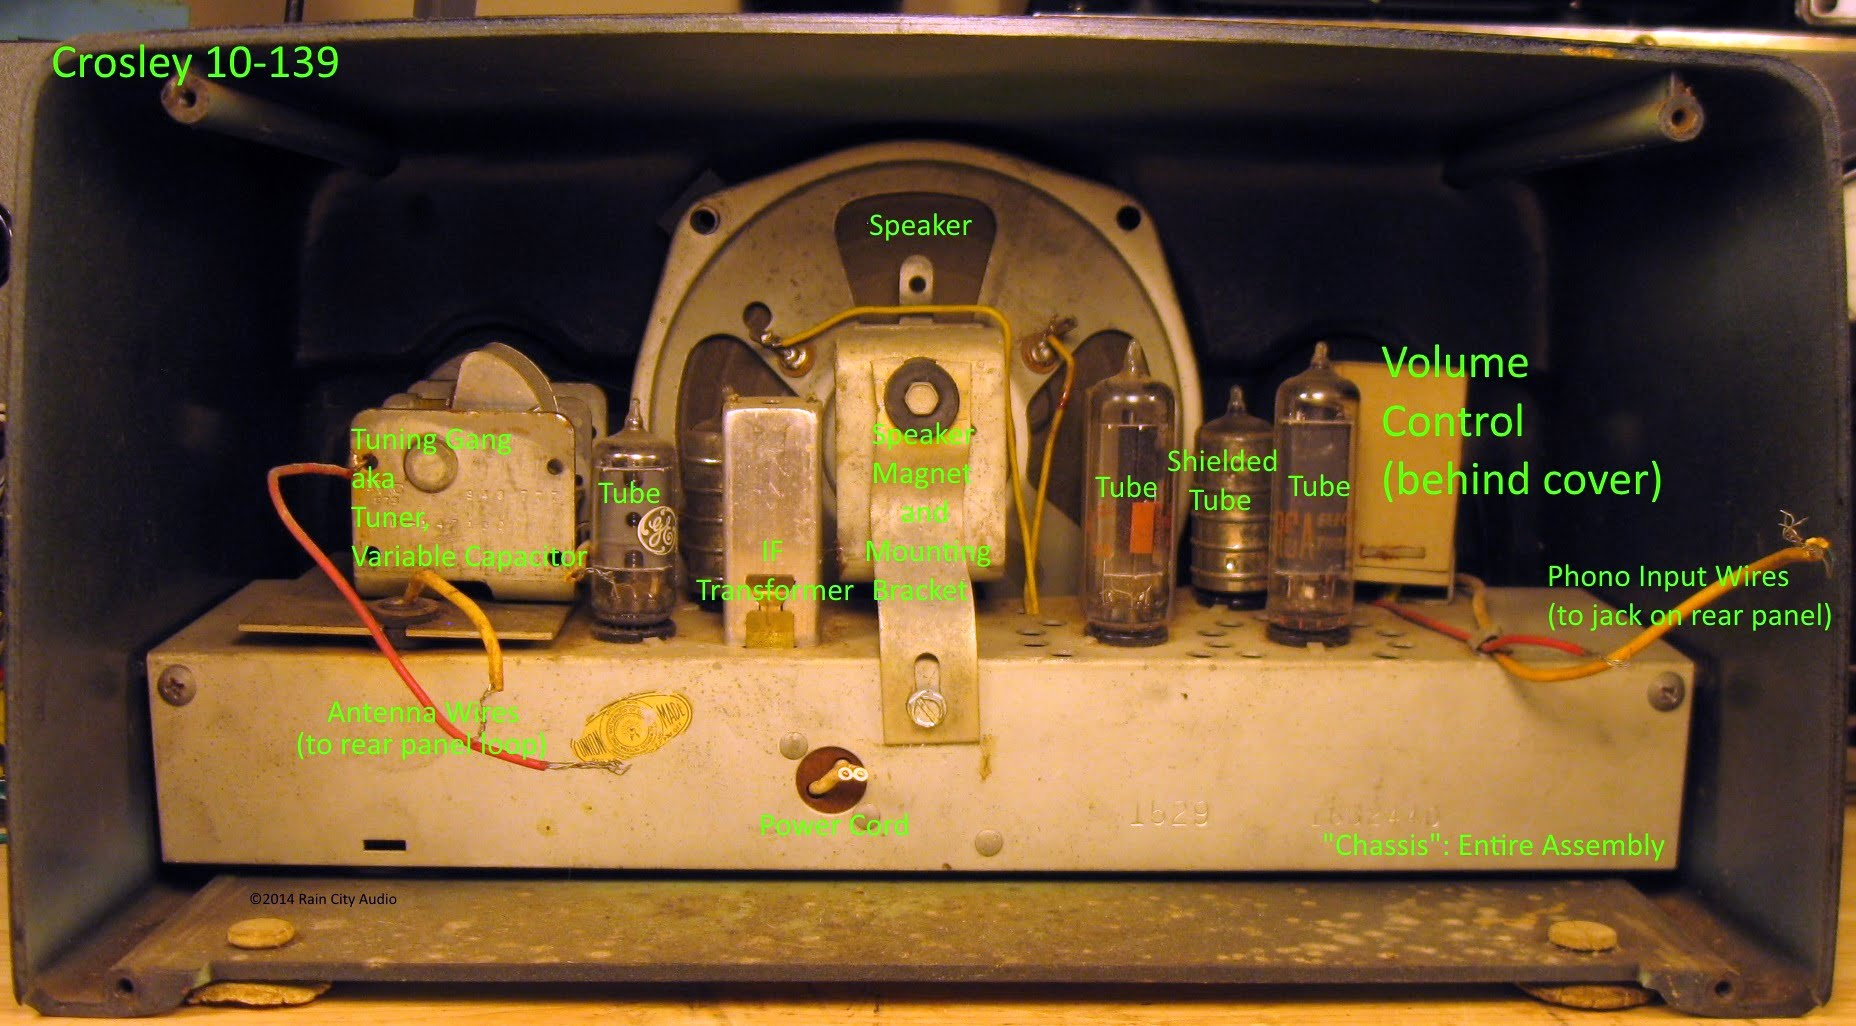 photos with parts diagrams of a vintage tube radio – the crosley 10-139,